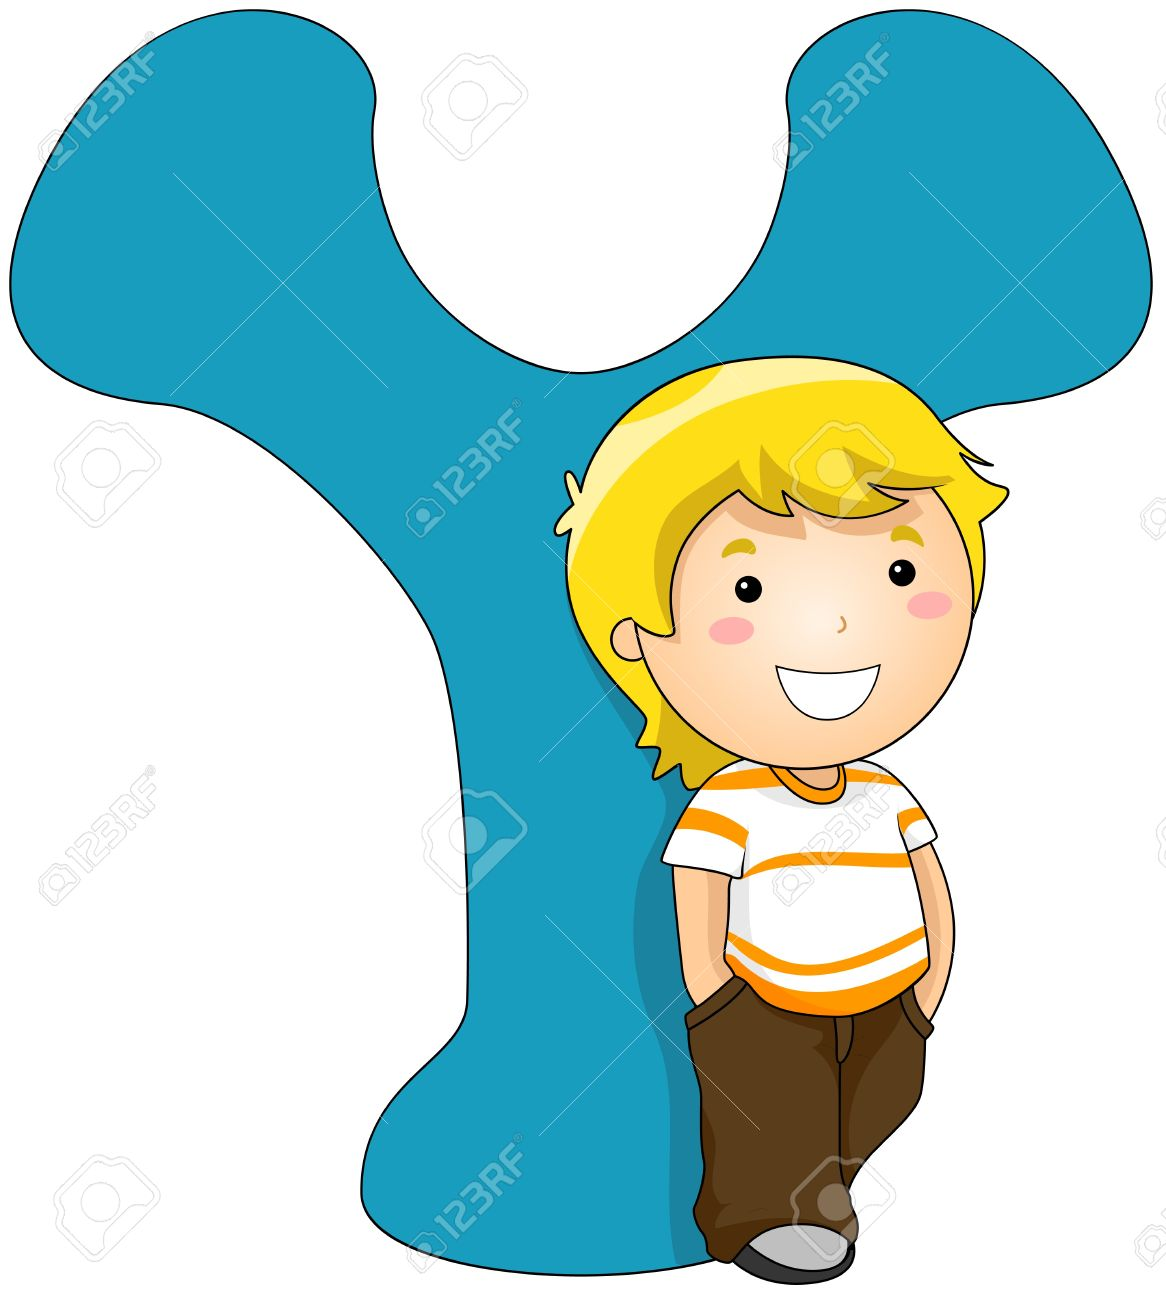 Worksheet Letters Y illustration of a boy standing beside letter y stock photo y